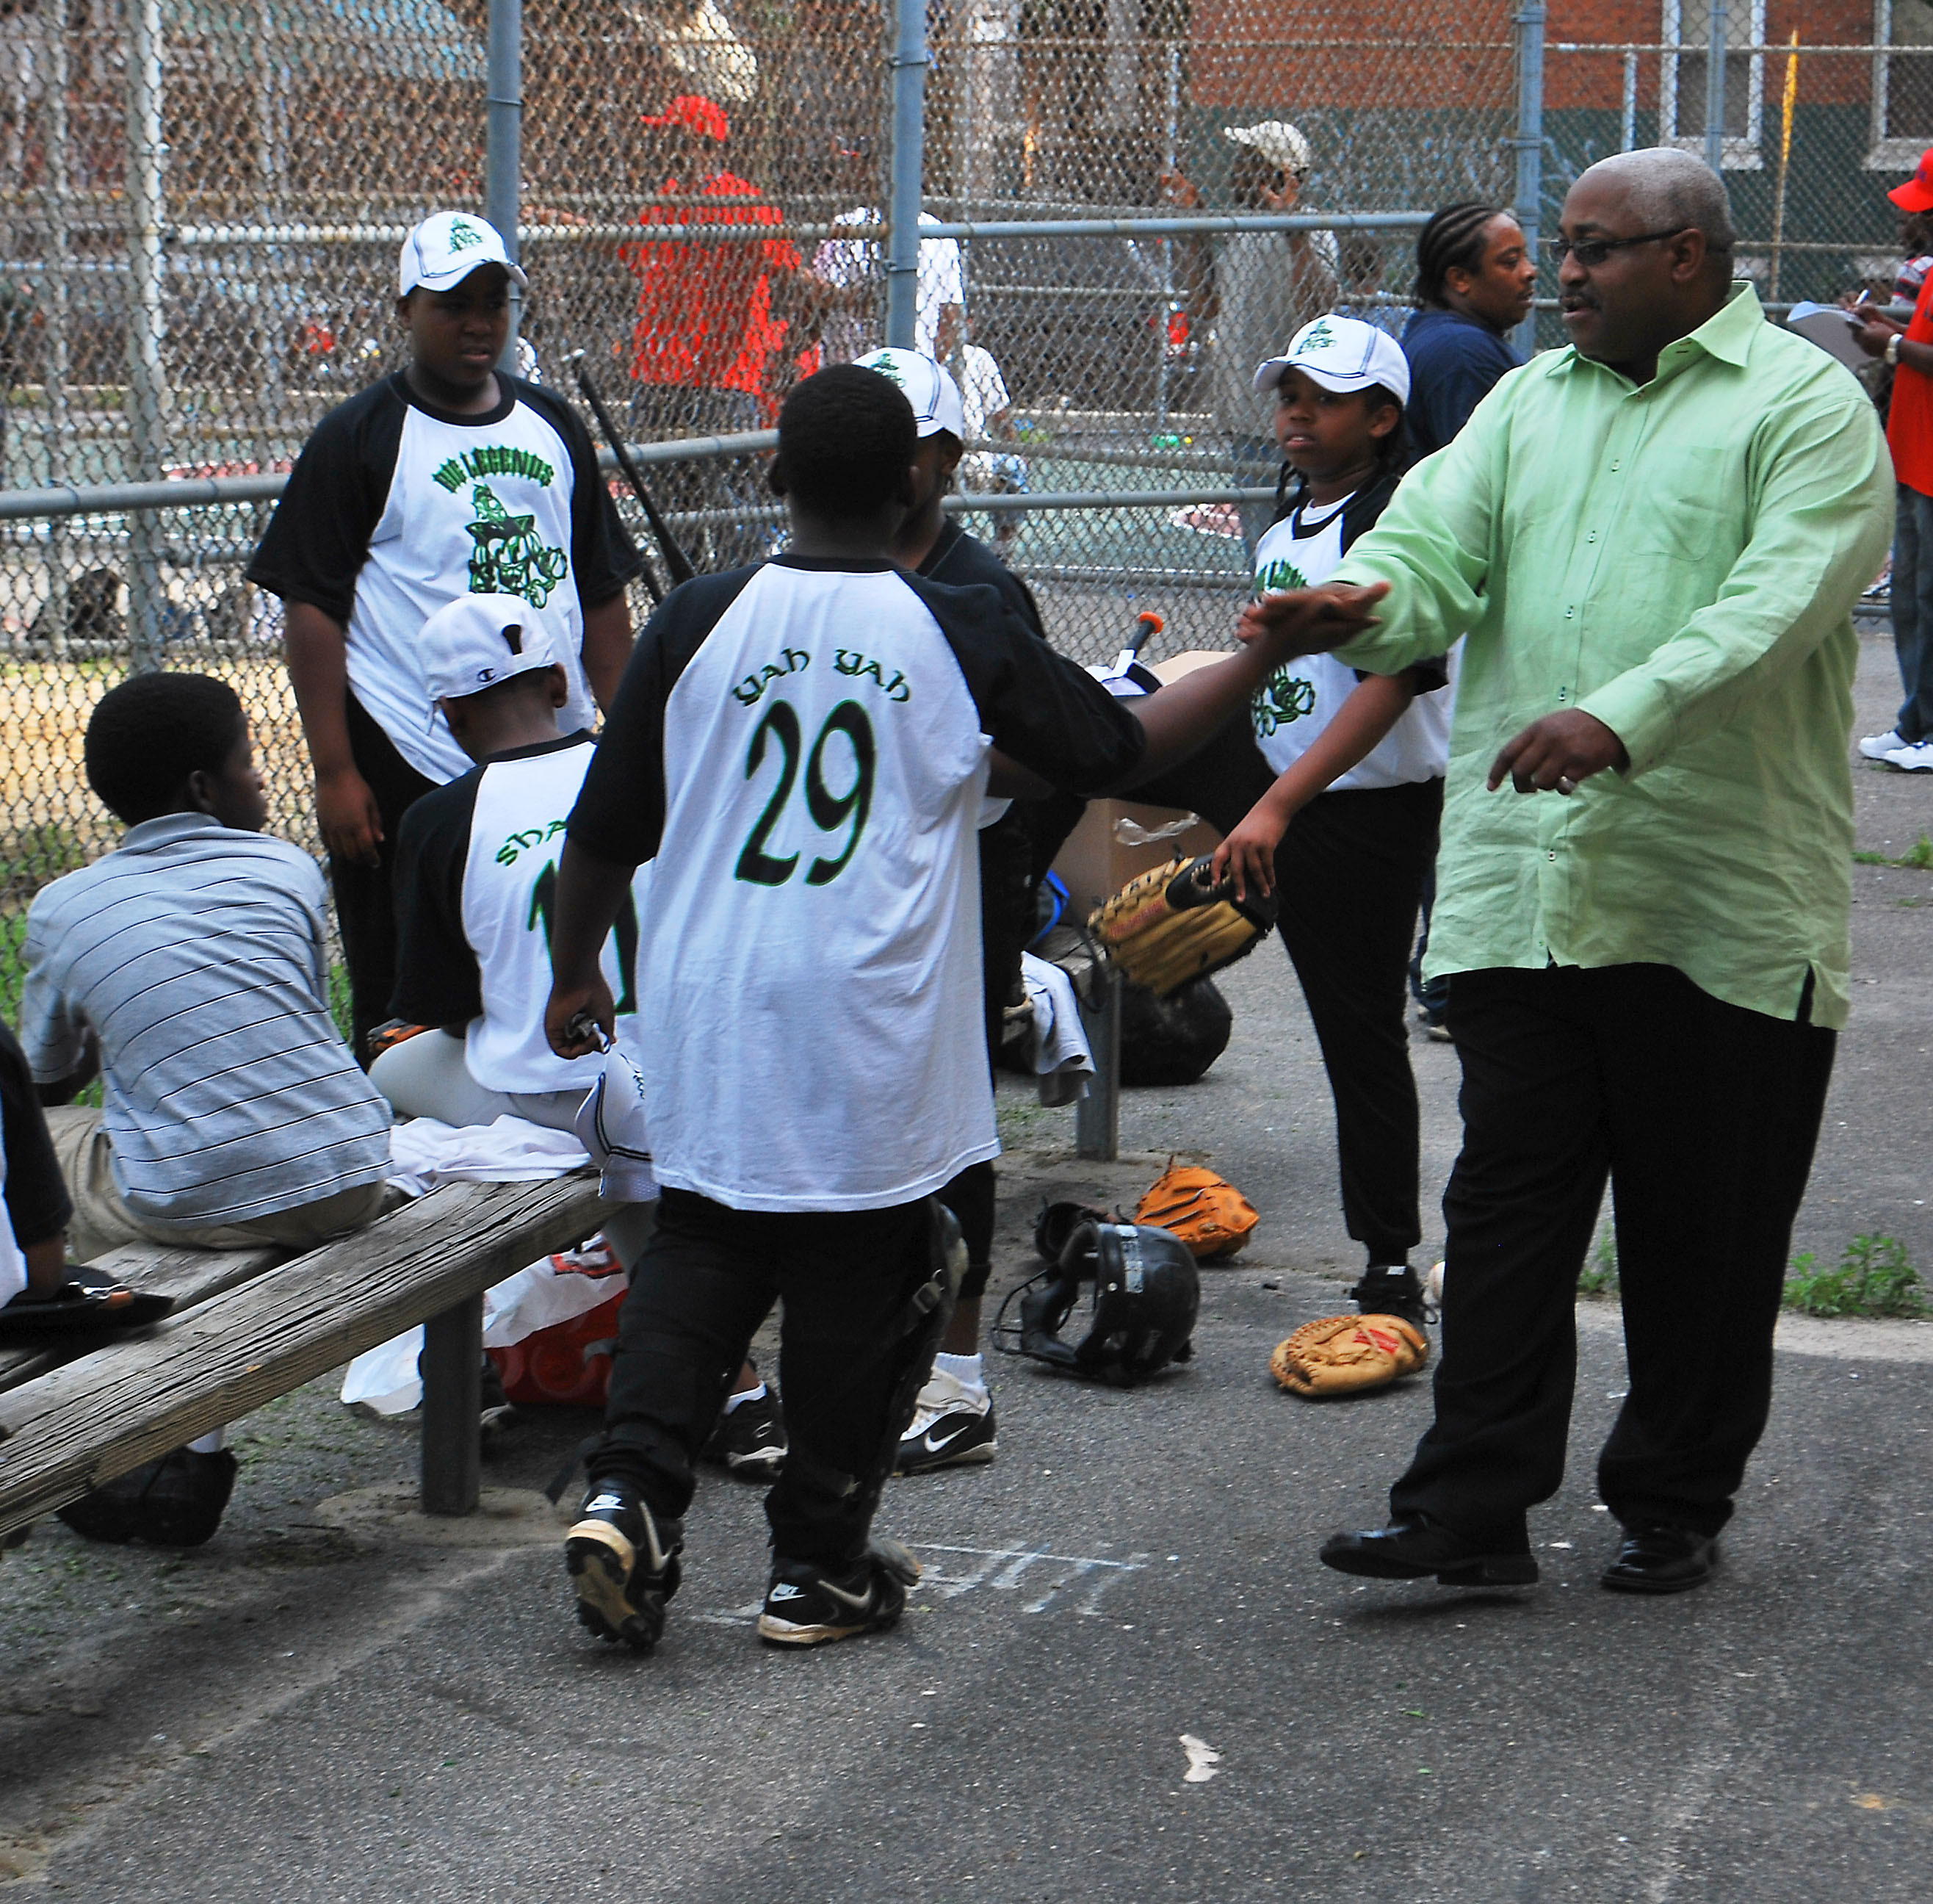 Derrick Ford greets Stawberry Mansion All-Stars before a game.